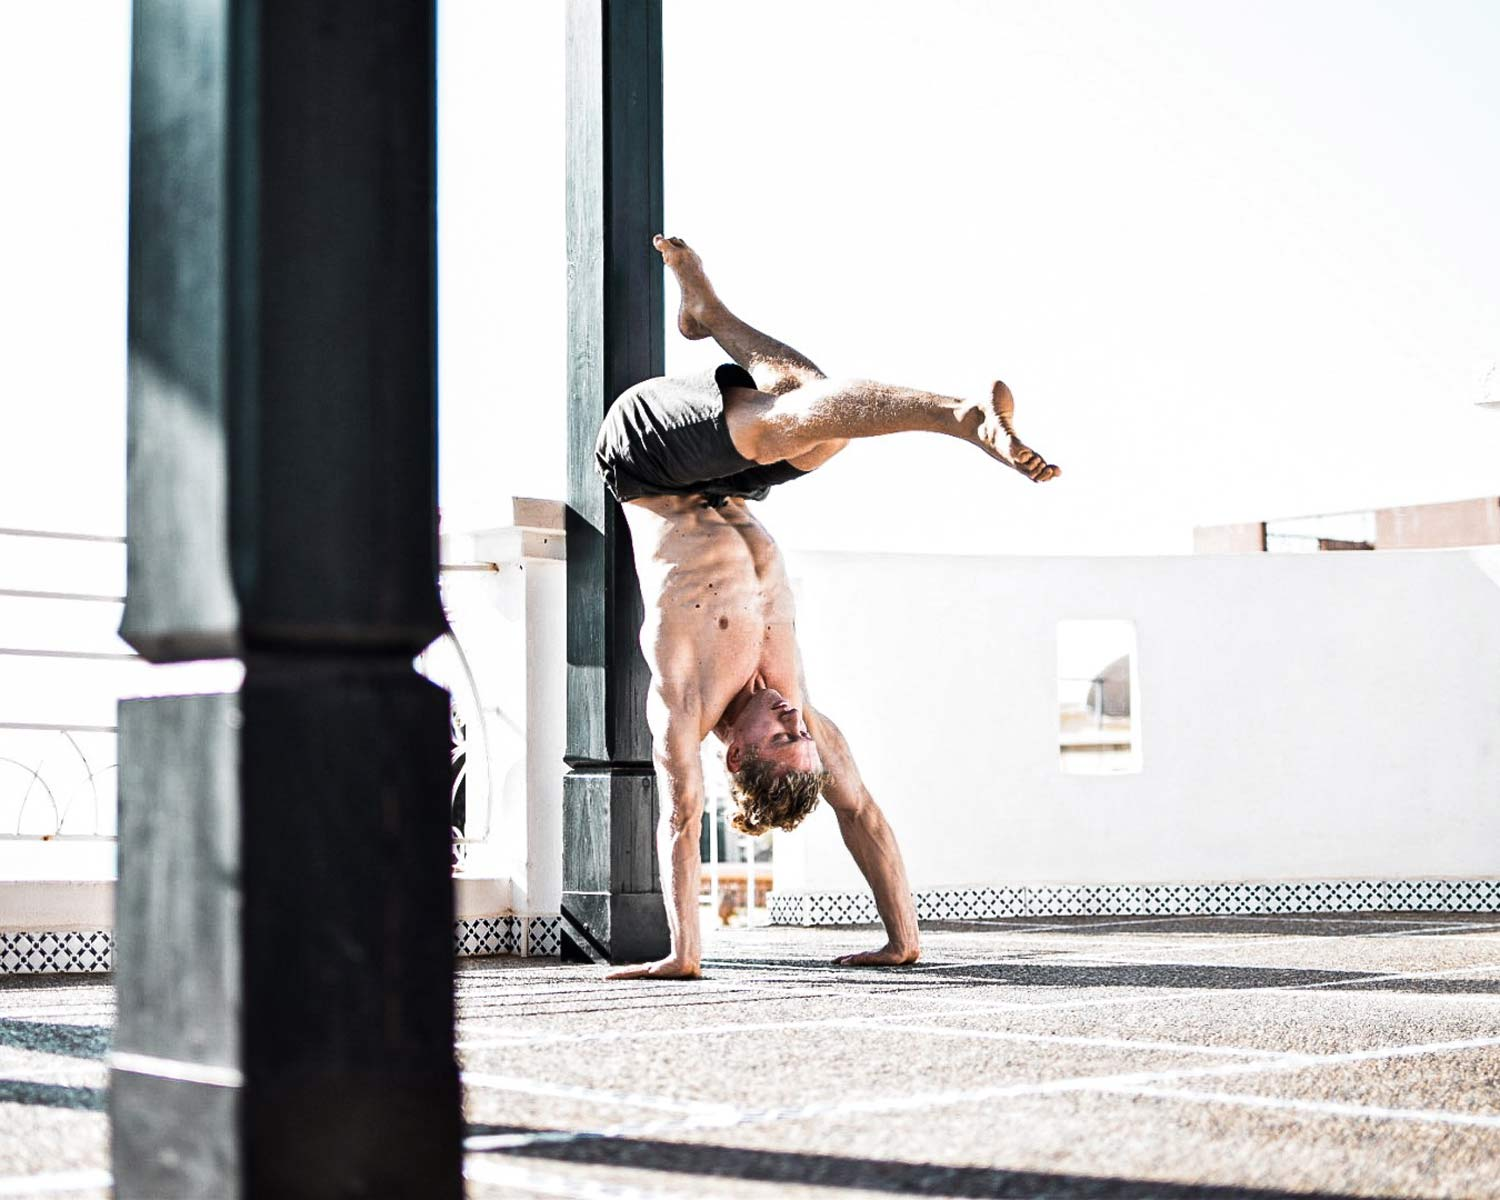 Man doing a negative press handstand wearing So We Flow...